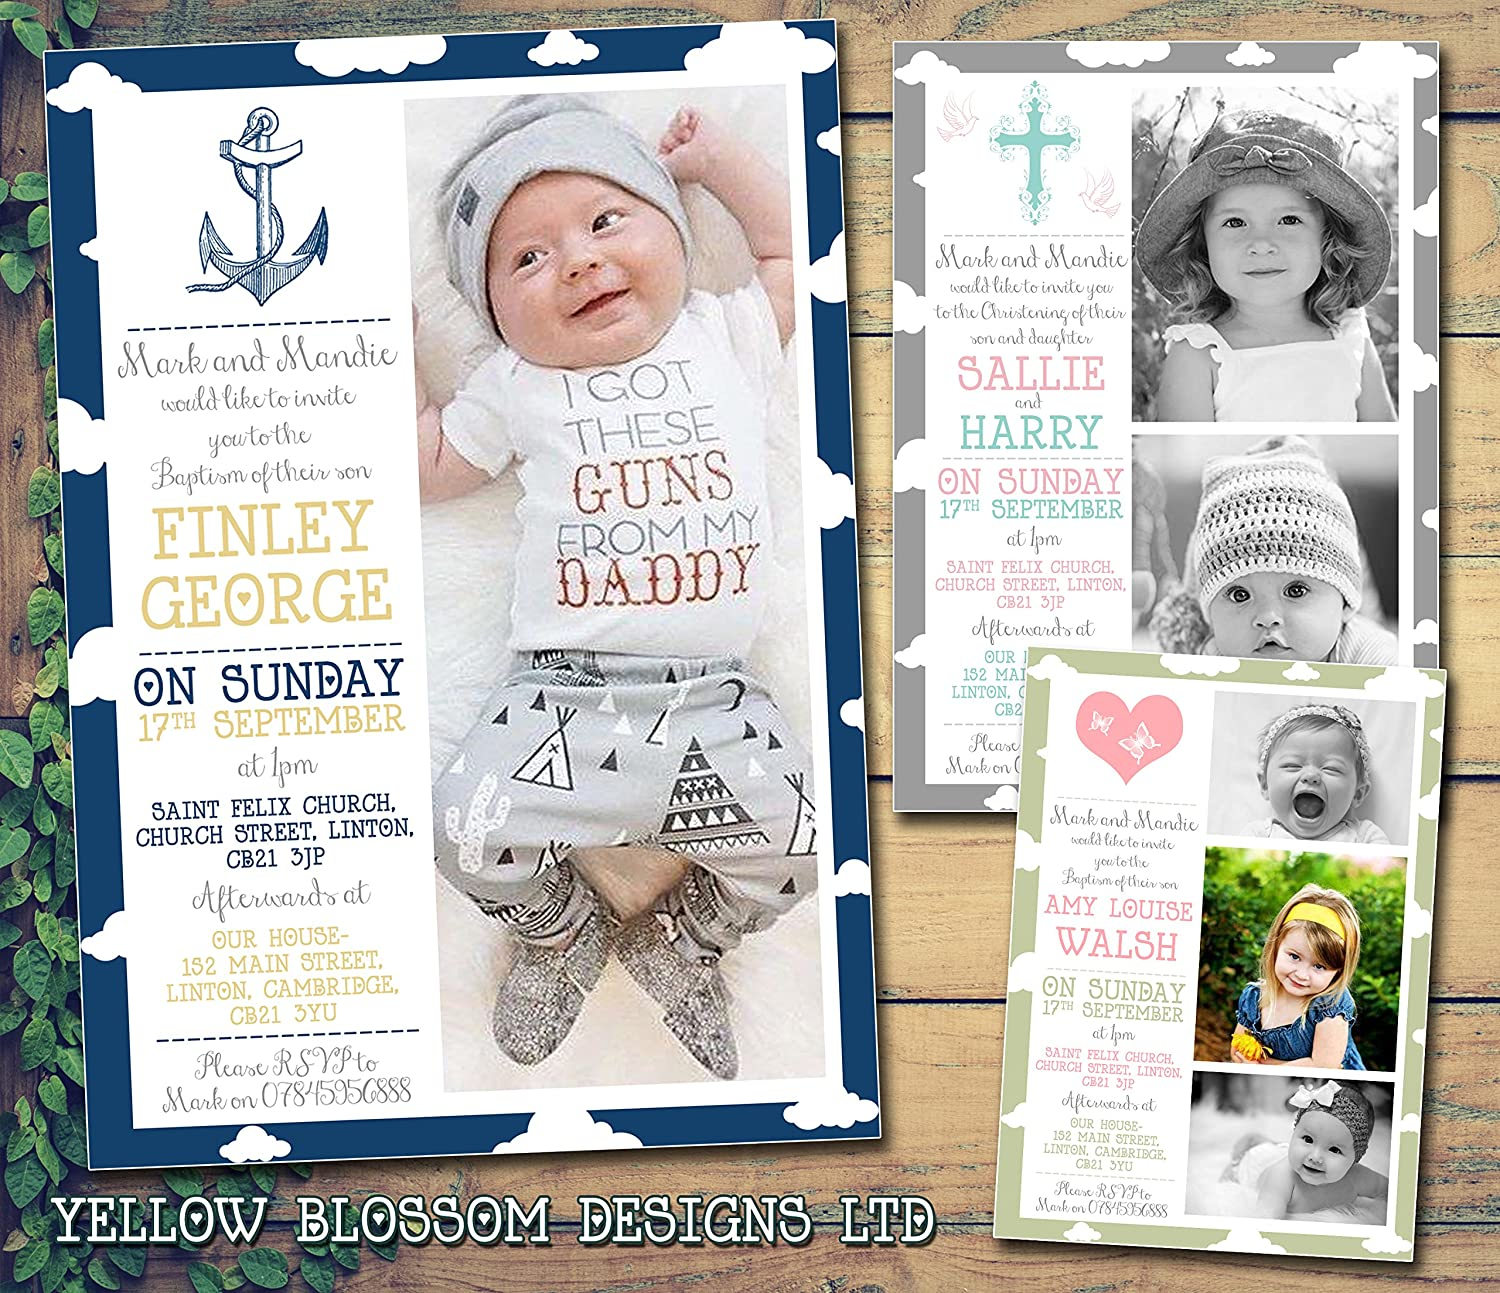 Personalised Christening Naming Ceremony Confirmation Baptism Invitations Printed Invites Boy Girl Joint Party Twins Unisex Photo Card 5 10 20 30 40 50 60 70 80 90 100